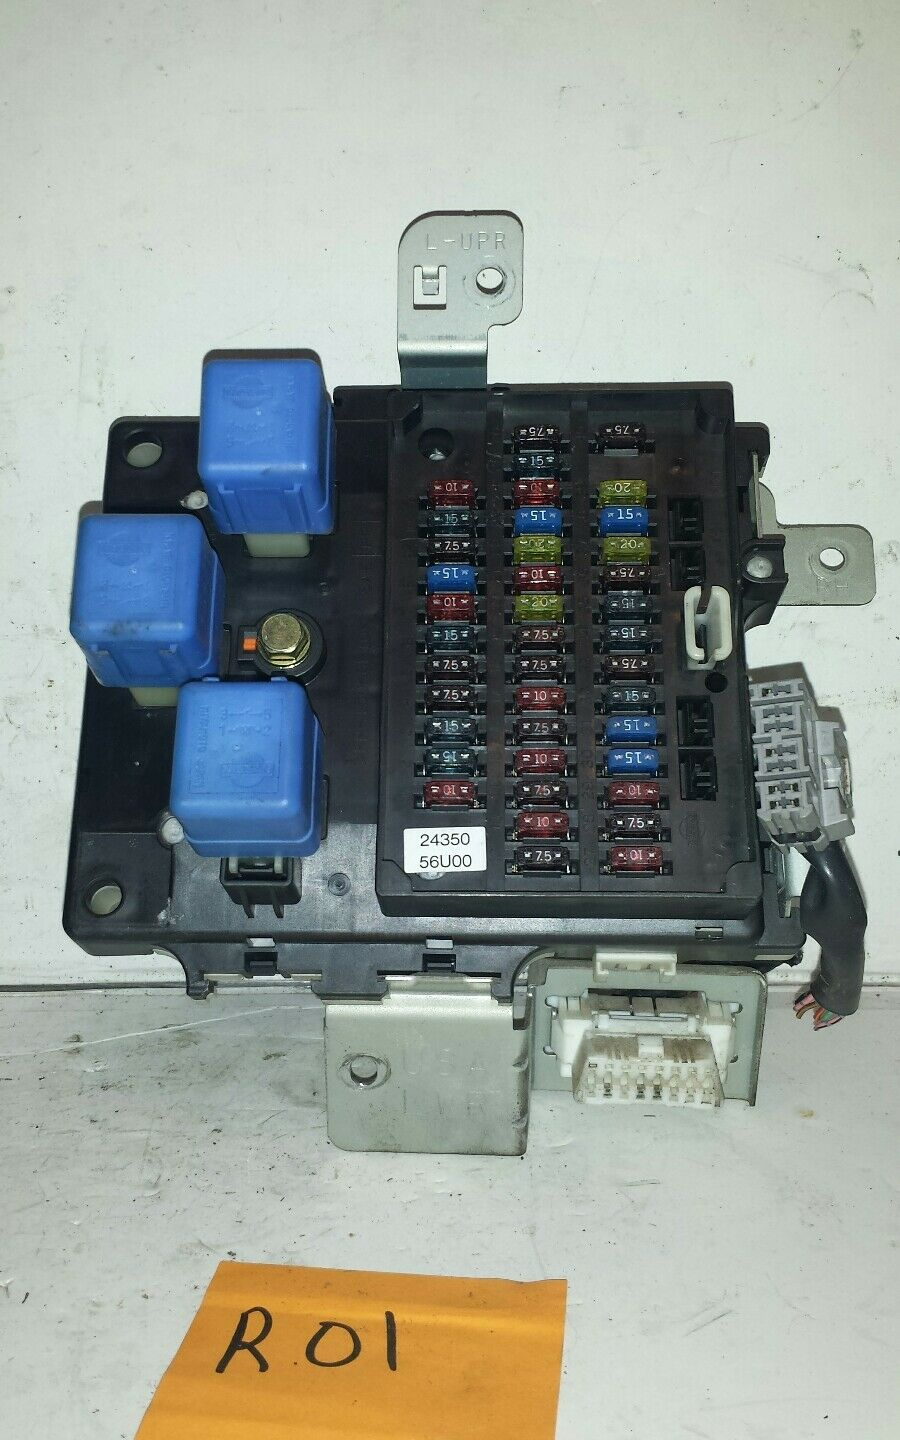 97-99 Nissan Maxima Infiniti i30 Interior Fuse Box OEM 24350-56U00 Used V6  for sale onlineeBay